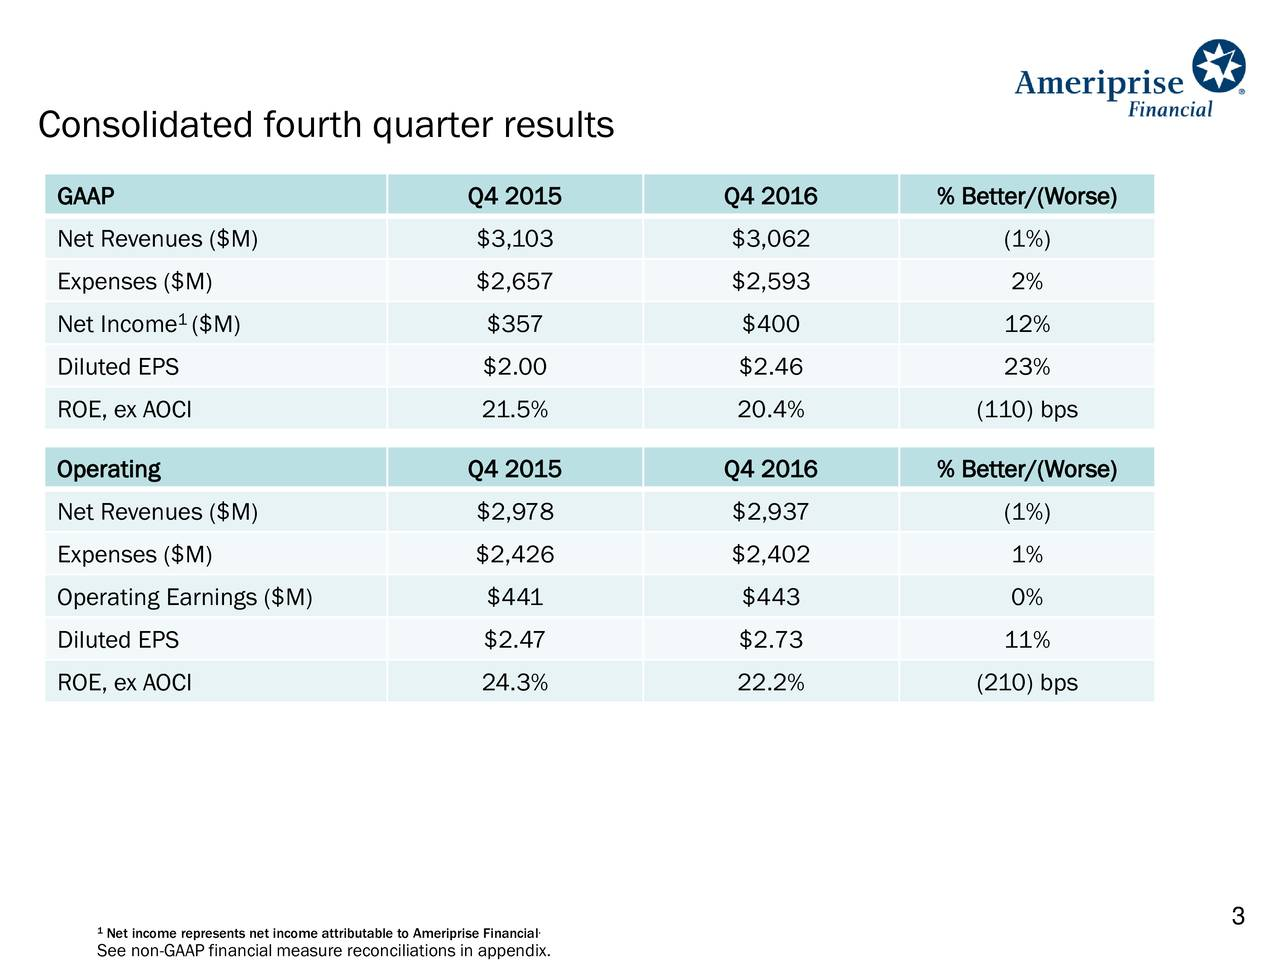 GAAP Q4 2015 Q4 2016 % Better/(Worse) Net Revenues ($M) $3,103 $3,062 (1%) Expenses ($M) $2,657 $2,593 2% 1 Net Income ($M) $357 $400 12% Diluted EPS $2.00 $2.46 23% ROE, ex AOCI 21.5% 20.4% (110) bps Operating Q4 2015 Q4 2016 % Better/(Worse) Net Revenues ($M) $2,978 $2,937 (1%) Expenses ($M) $2,426 $2,402 1% Operating Earnings ($M) $441 $443 0% Diluted EPS $2.47 $2.73 11% ROE, ex AOCI 24.3% 22.2% (210) bps 3 1Net income represents net income attributable to Ameriprise Financial